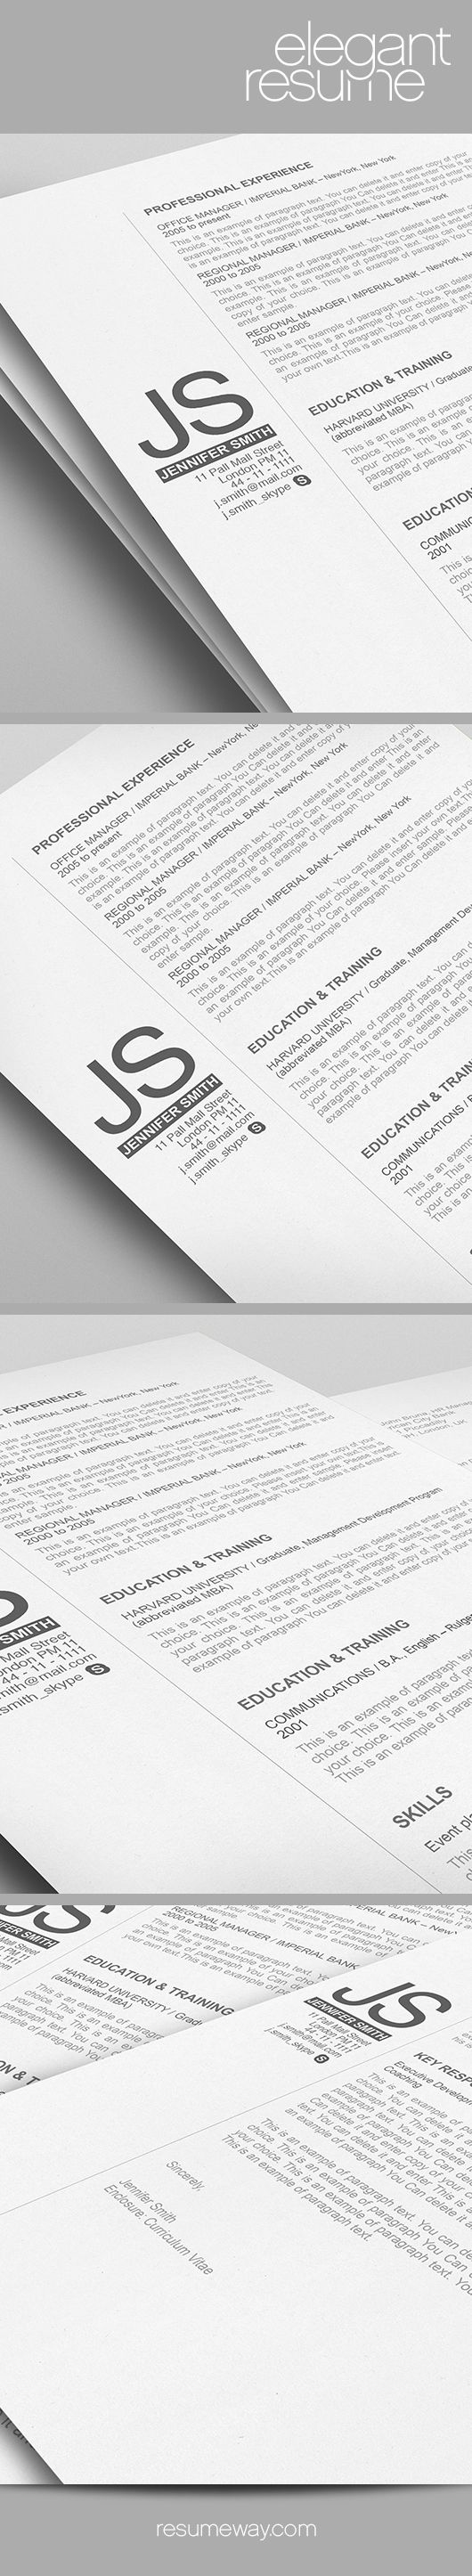 elegant resume template 110540 premium line of resume cover letter templates easy - Resume Cover Letter Template